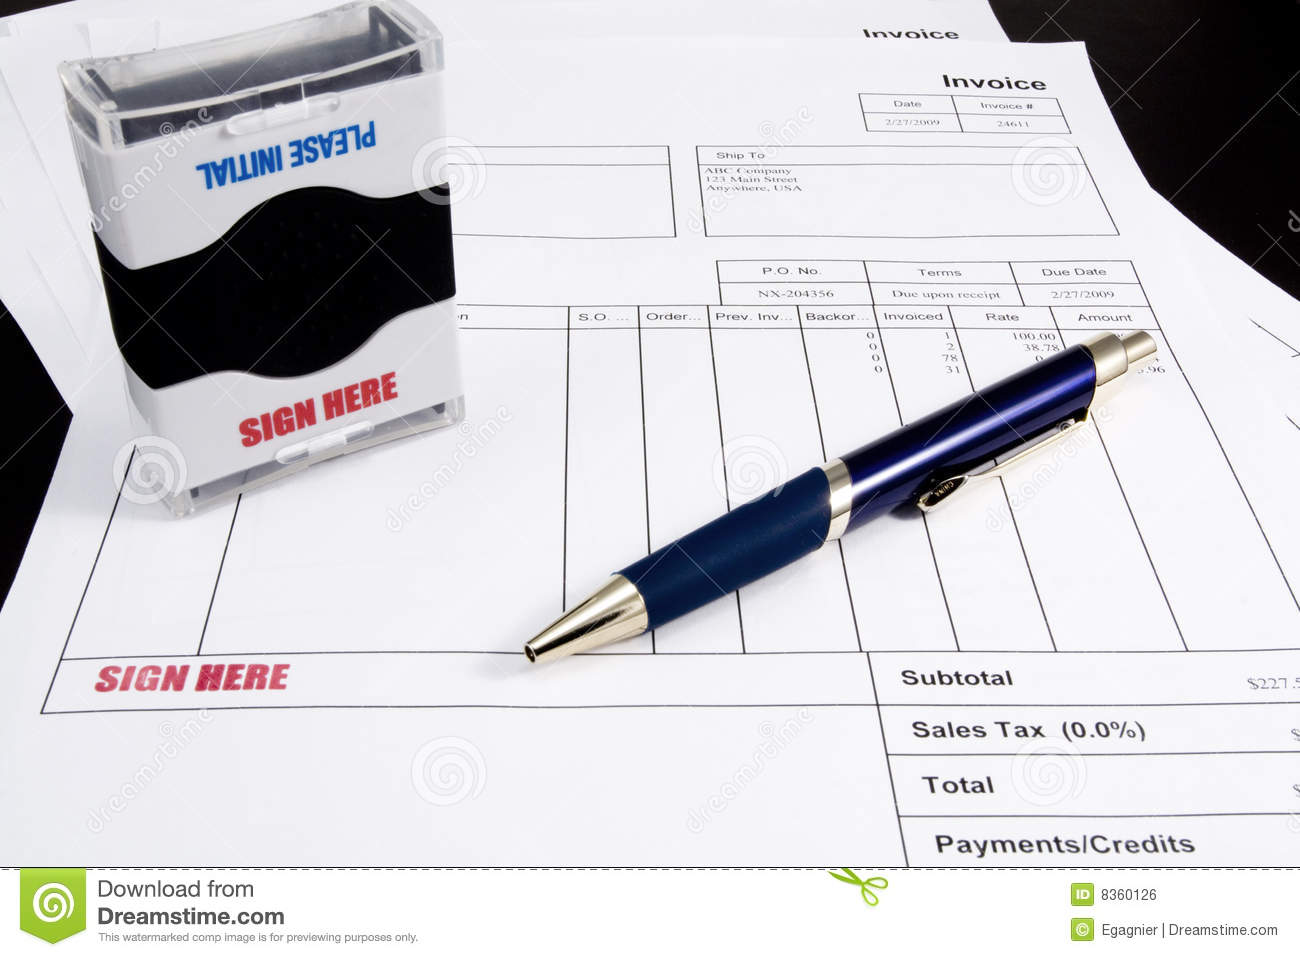 Sign Here Stamp On Invoice Stock Photo Image Of Business - Invoice stamp